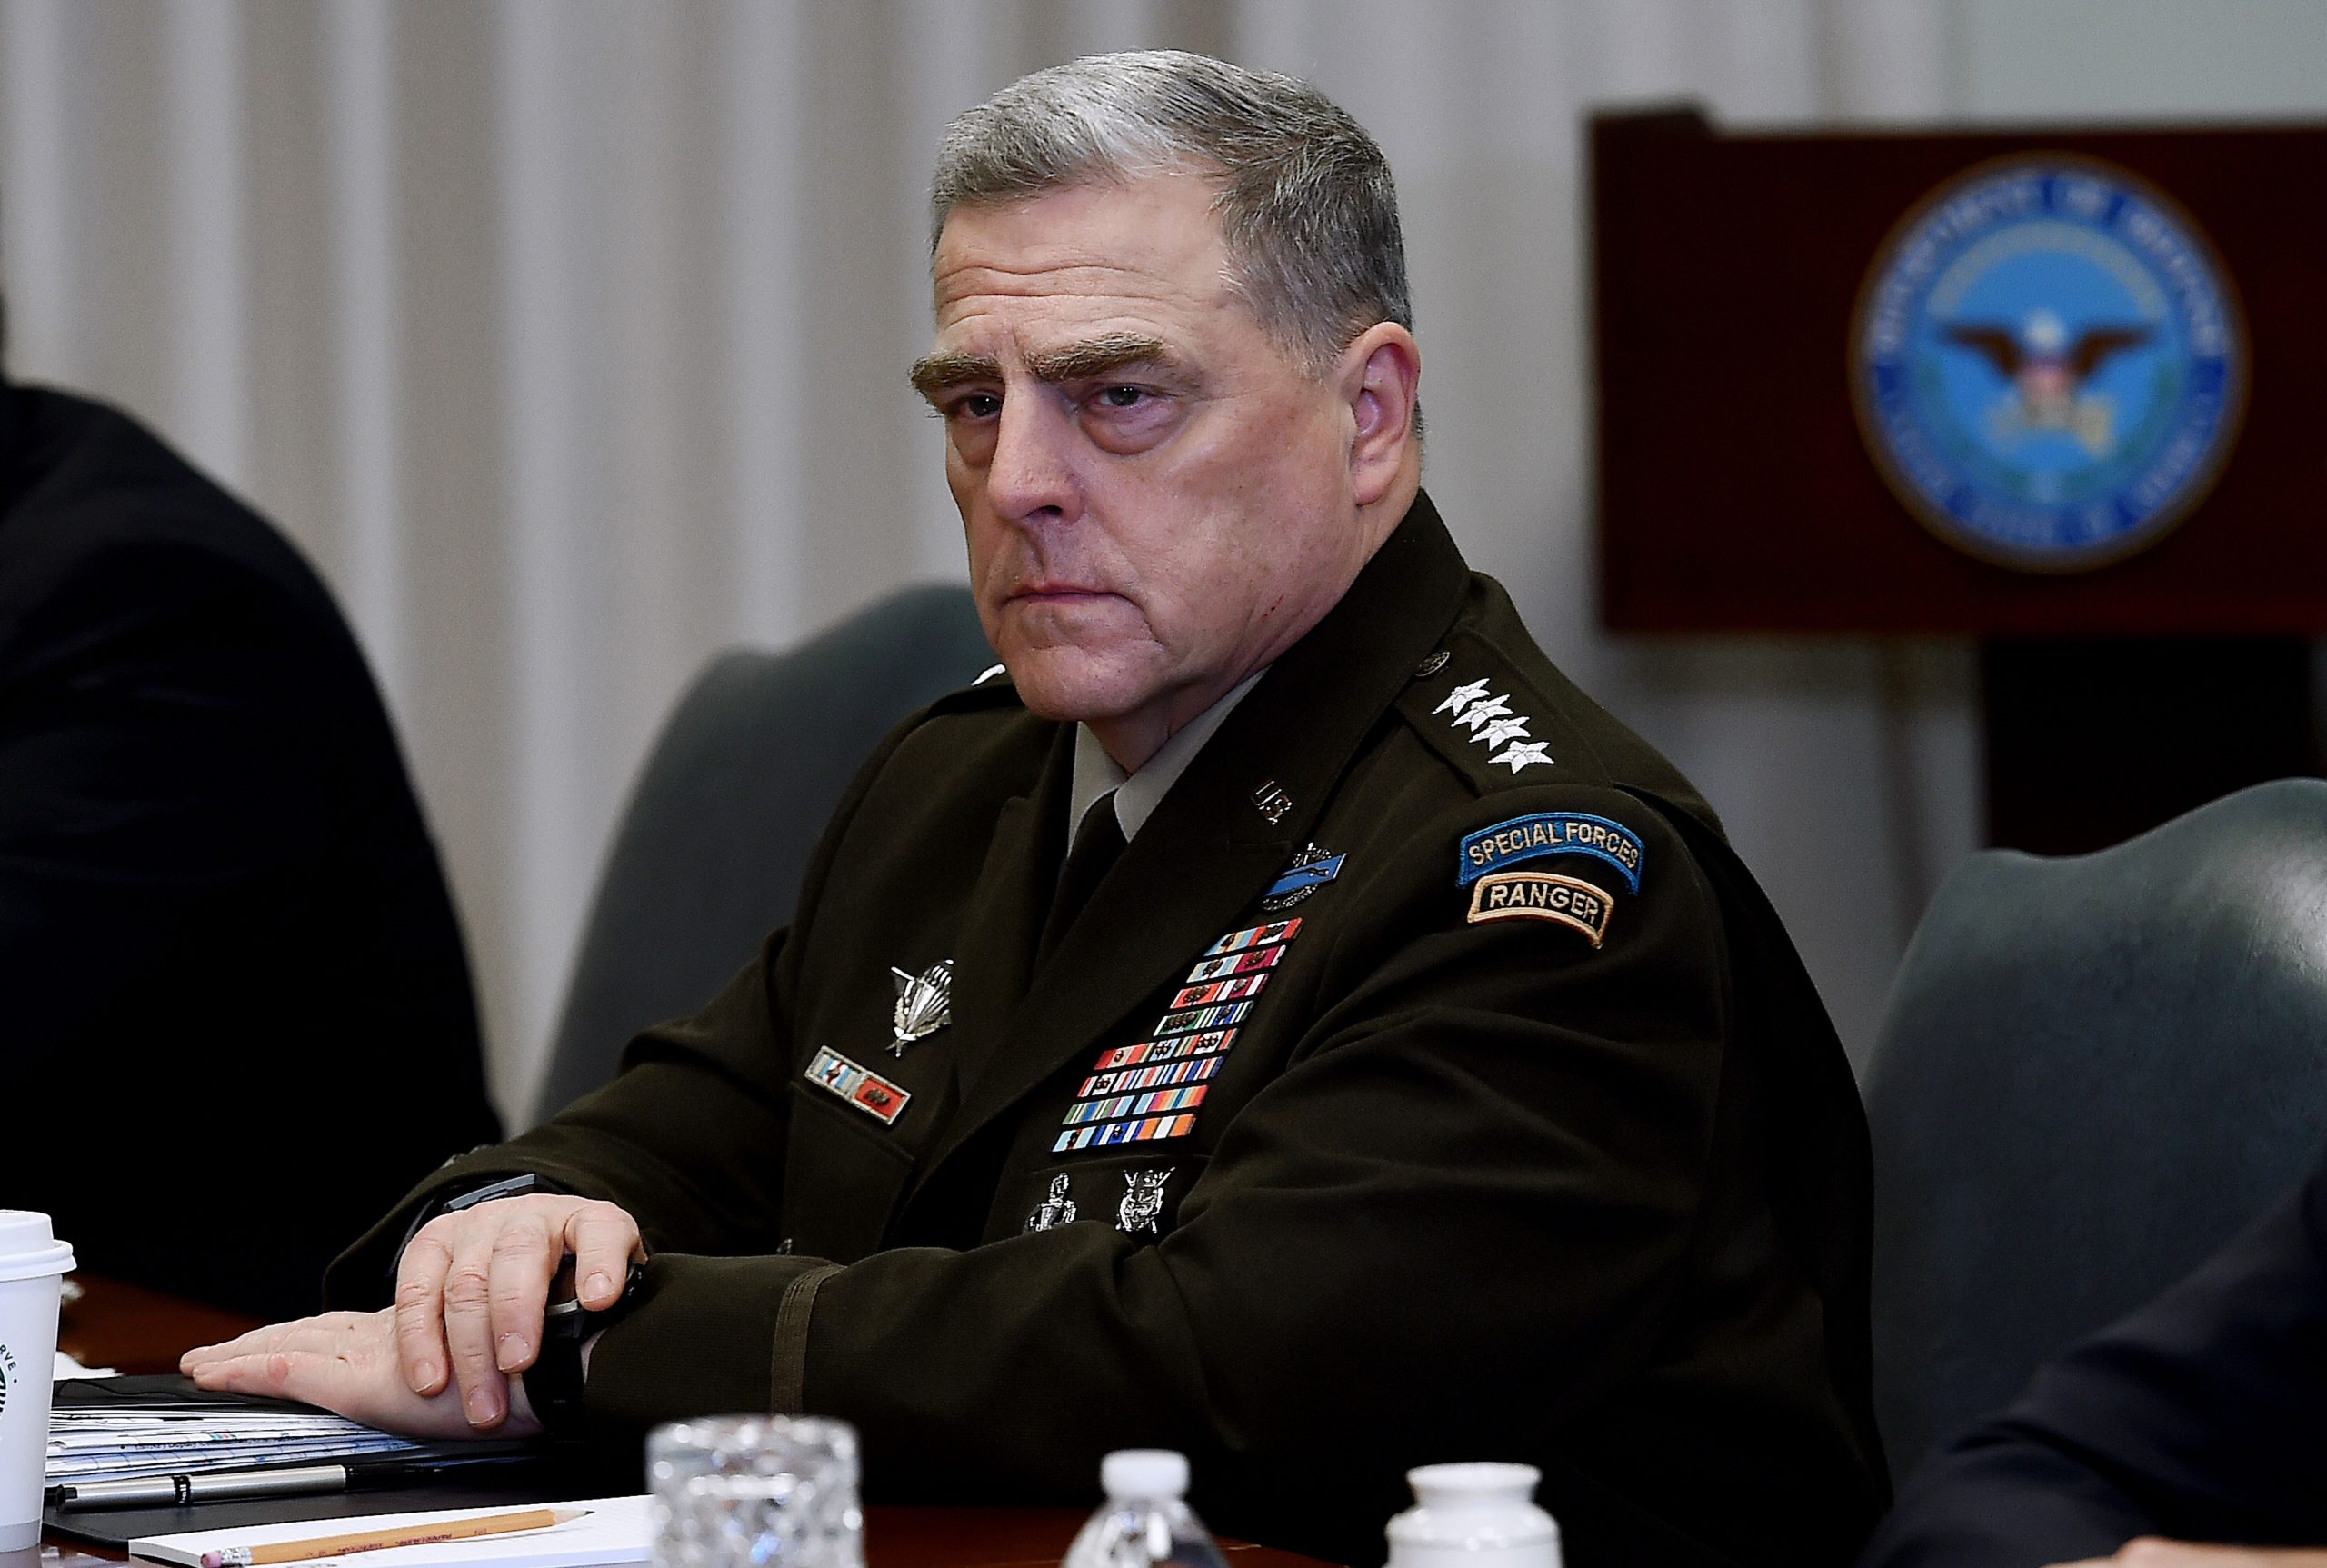 Chairman of the Joint Chiefs of Staff, U.S. Army General Mark Milley.